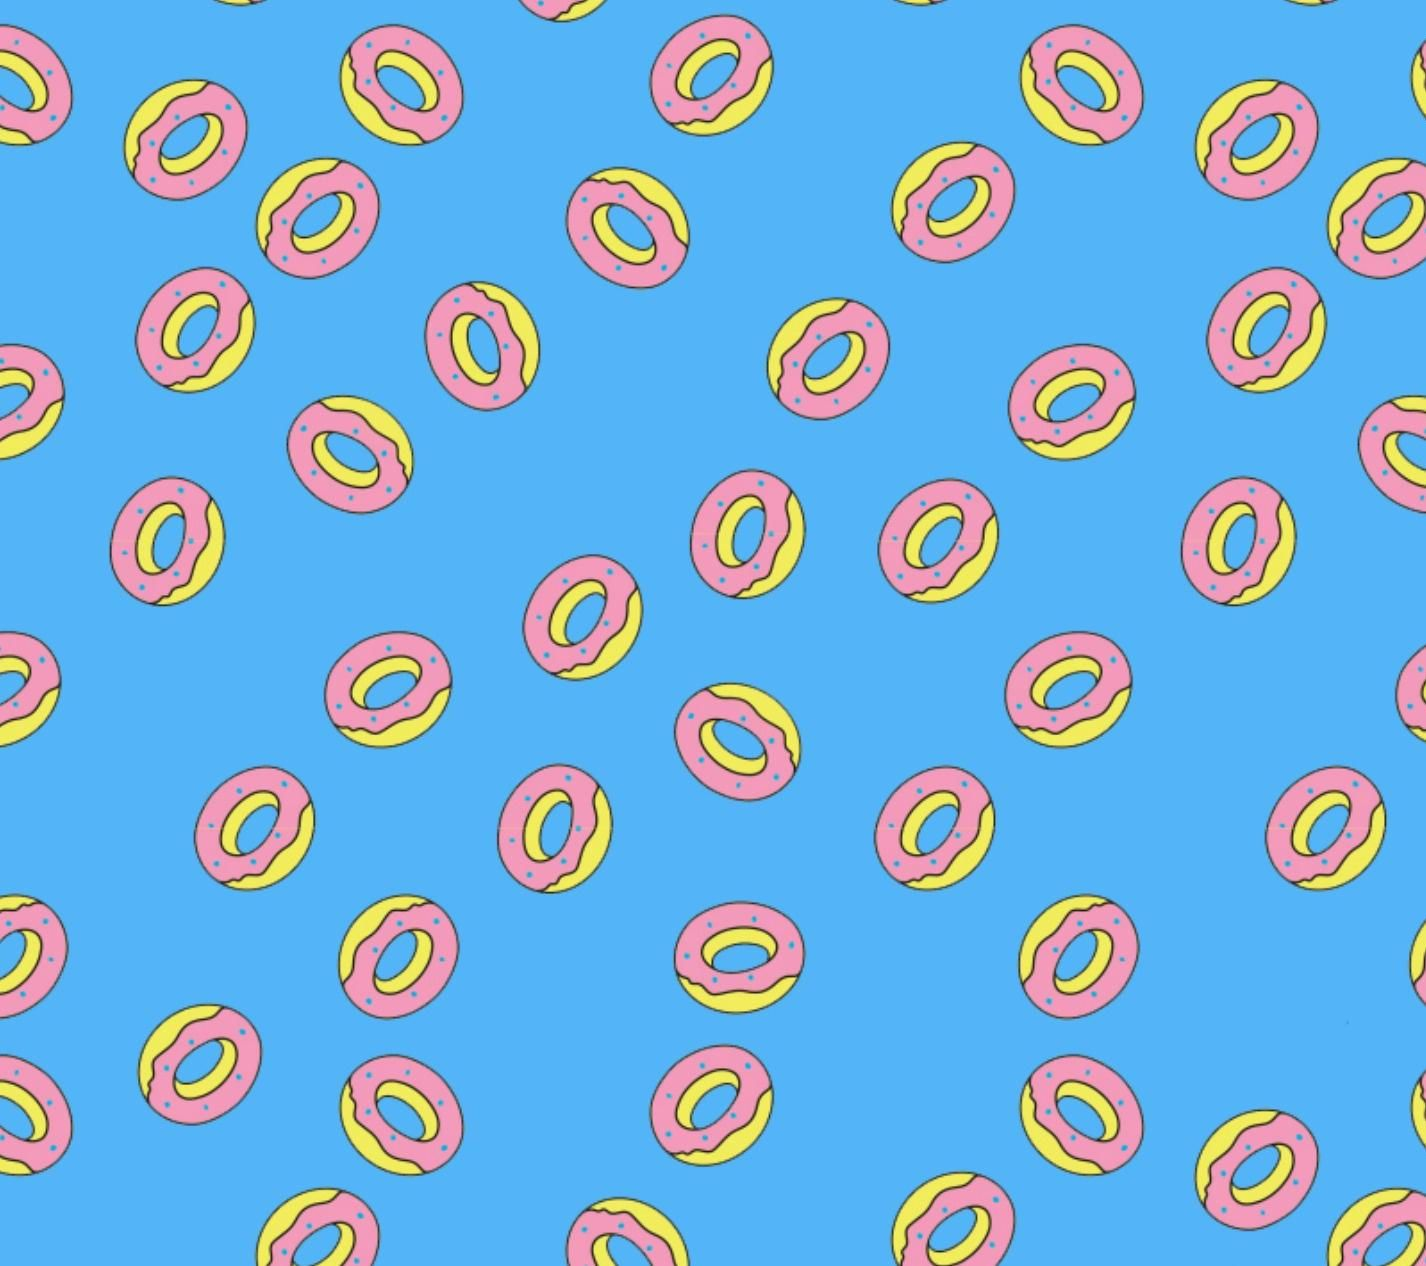 Odd Future Donut Wallpapers - Top Free